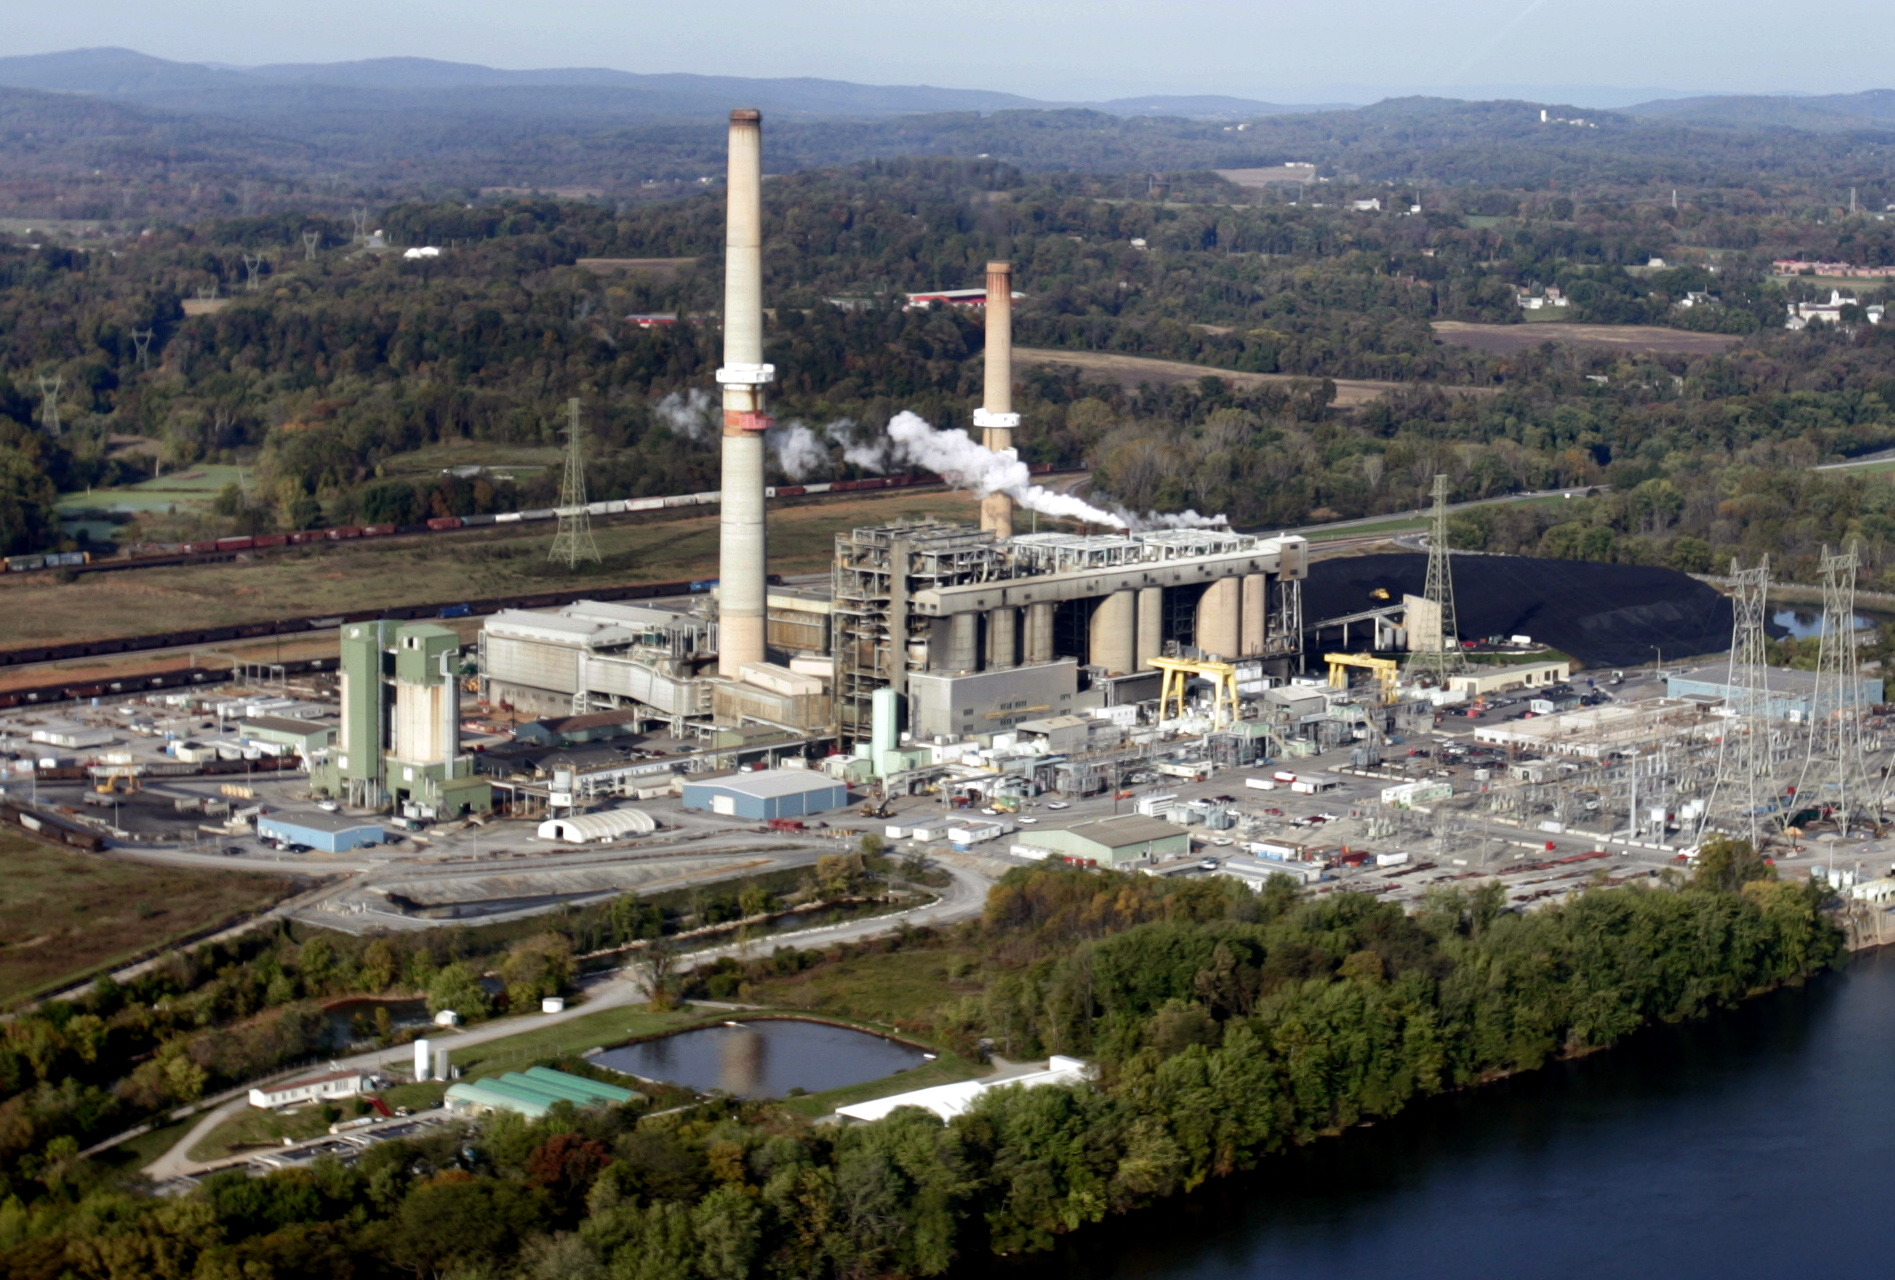 Talen Energy Gets $1 Million Fines Over Pollution at The Power Plant